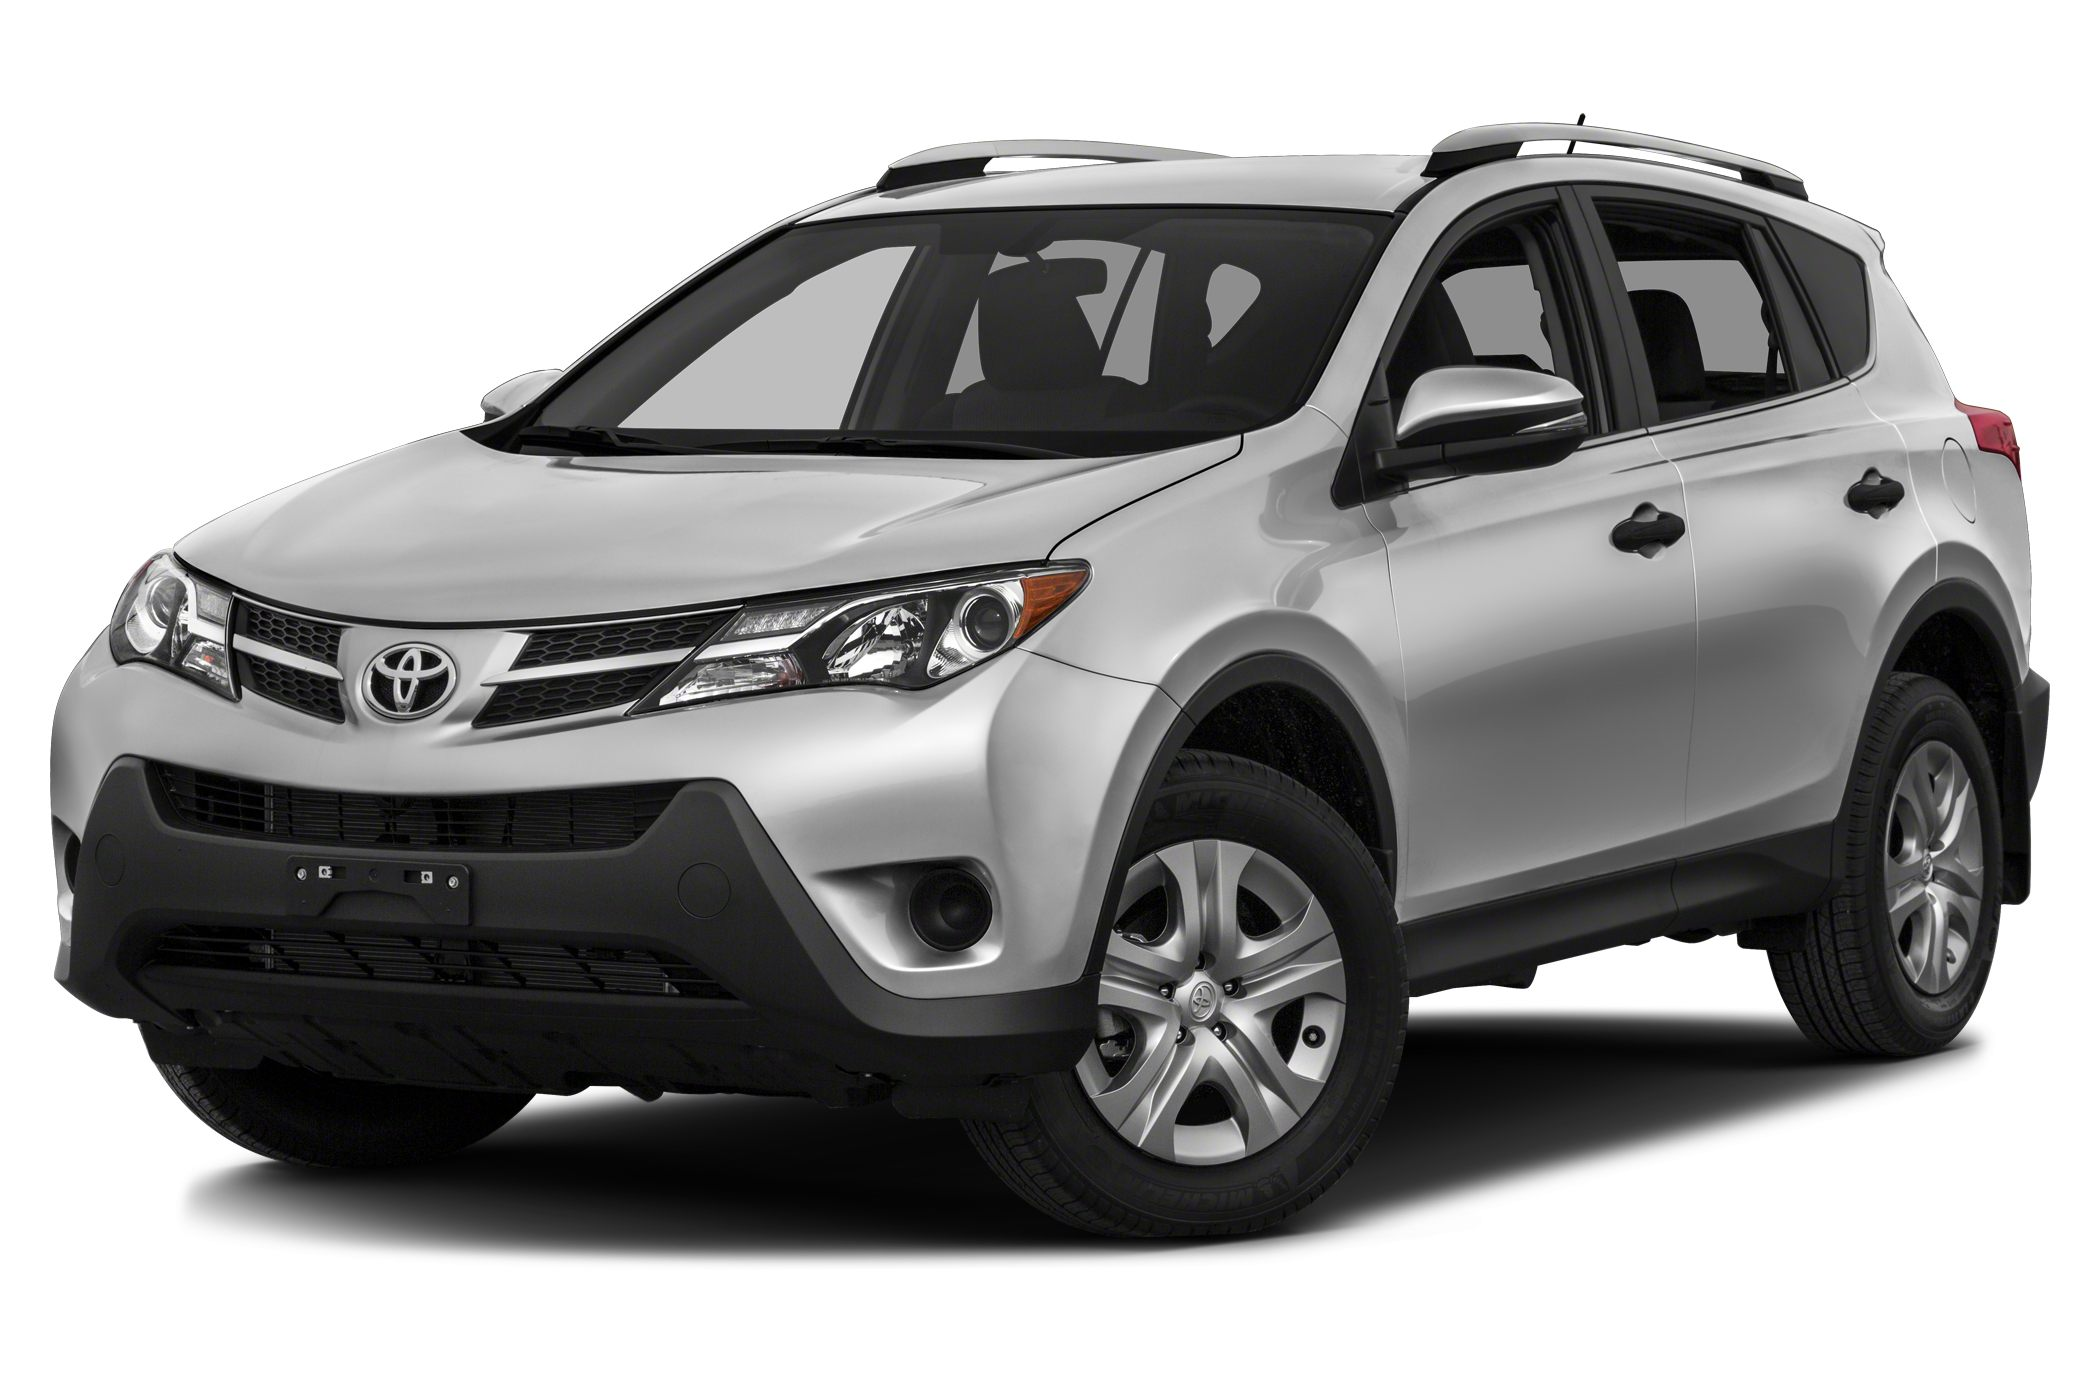 2013 Toyota RAV4 LE SUV for sale in North Augusta for $20,077 with 27,683 miles